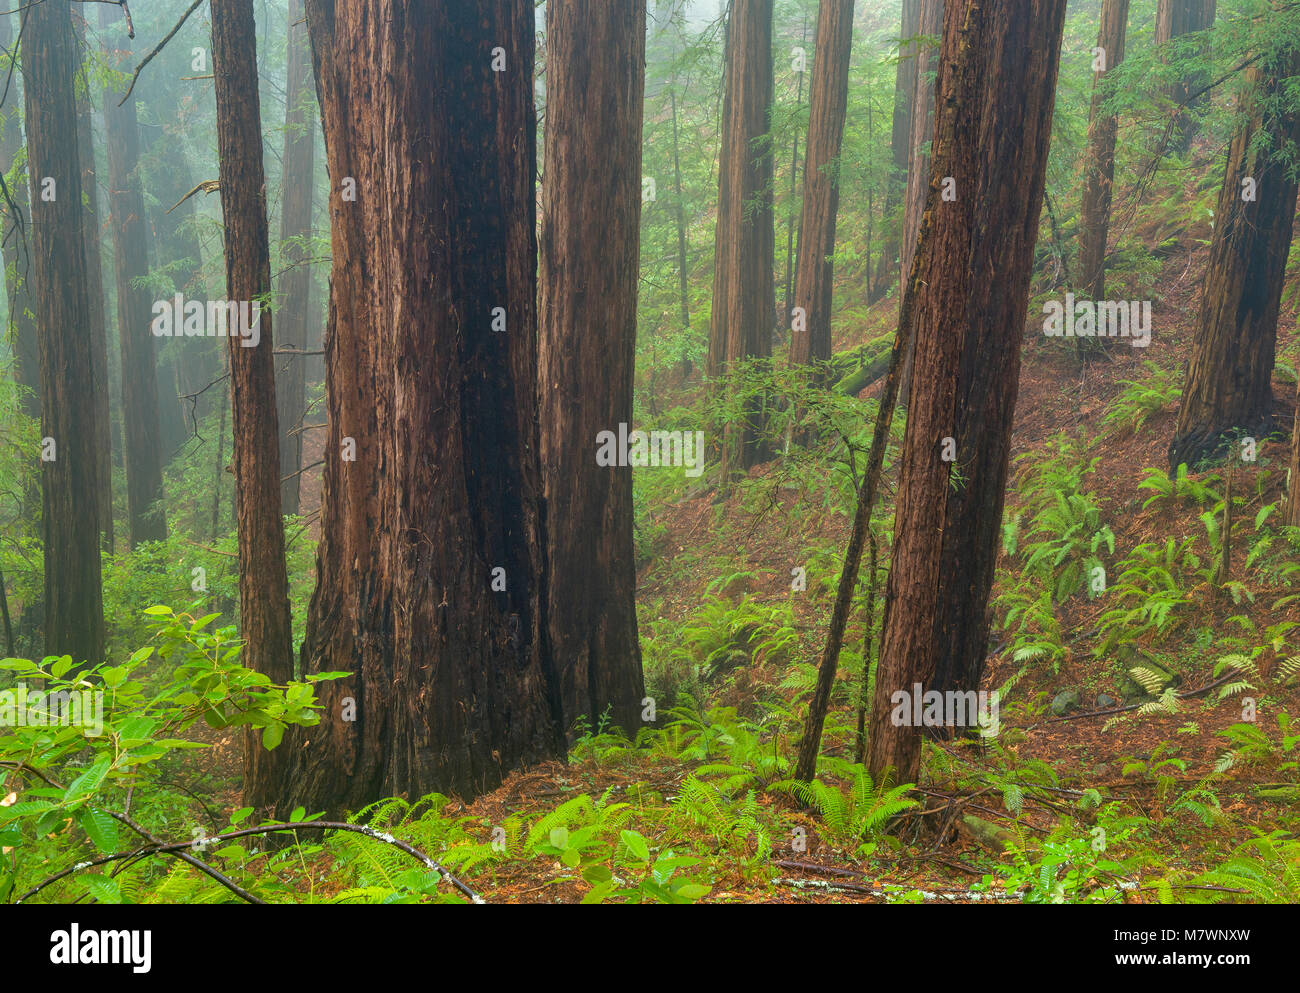 Nebbia costiera, Redwoods, Sequoia sempervirens, Muir Woods National Monument, Marin County, California Immagini Stock